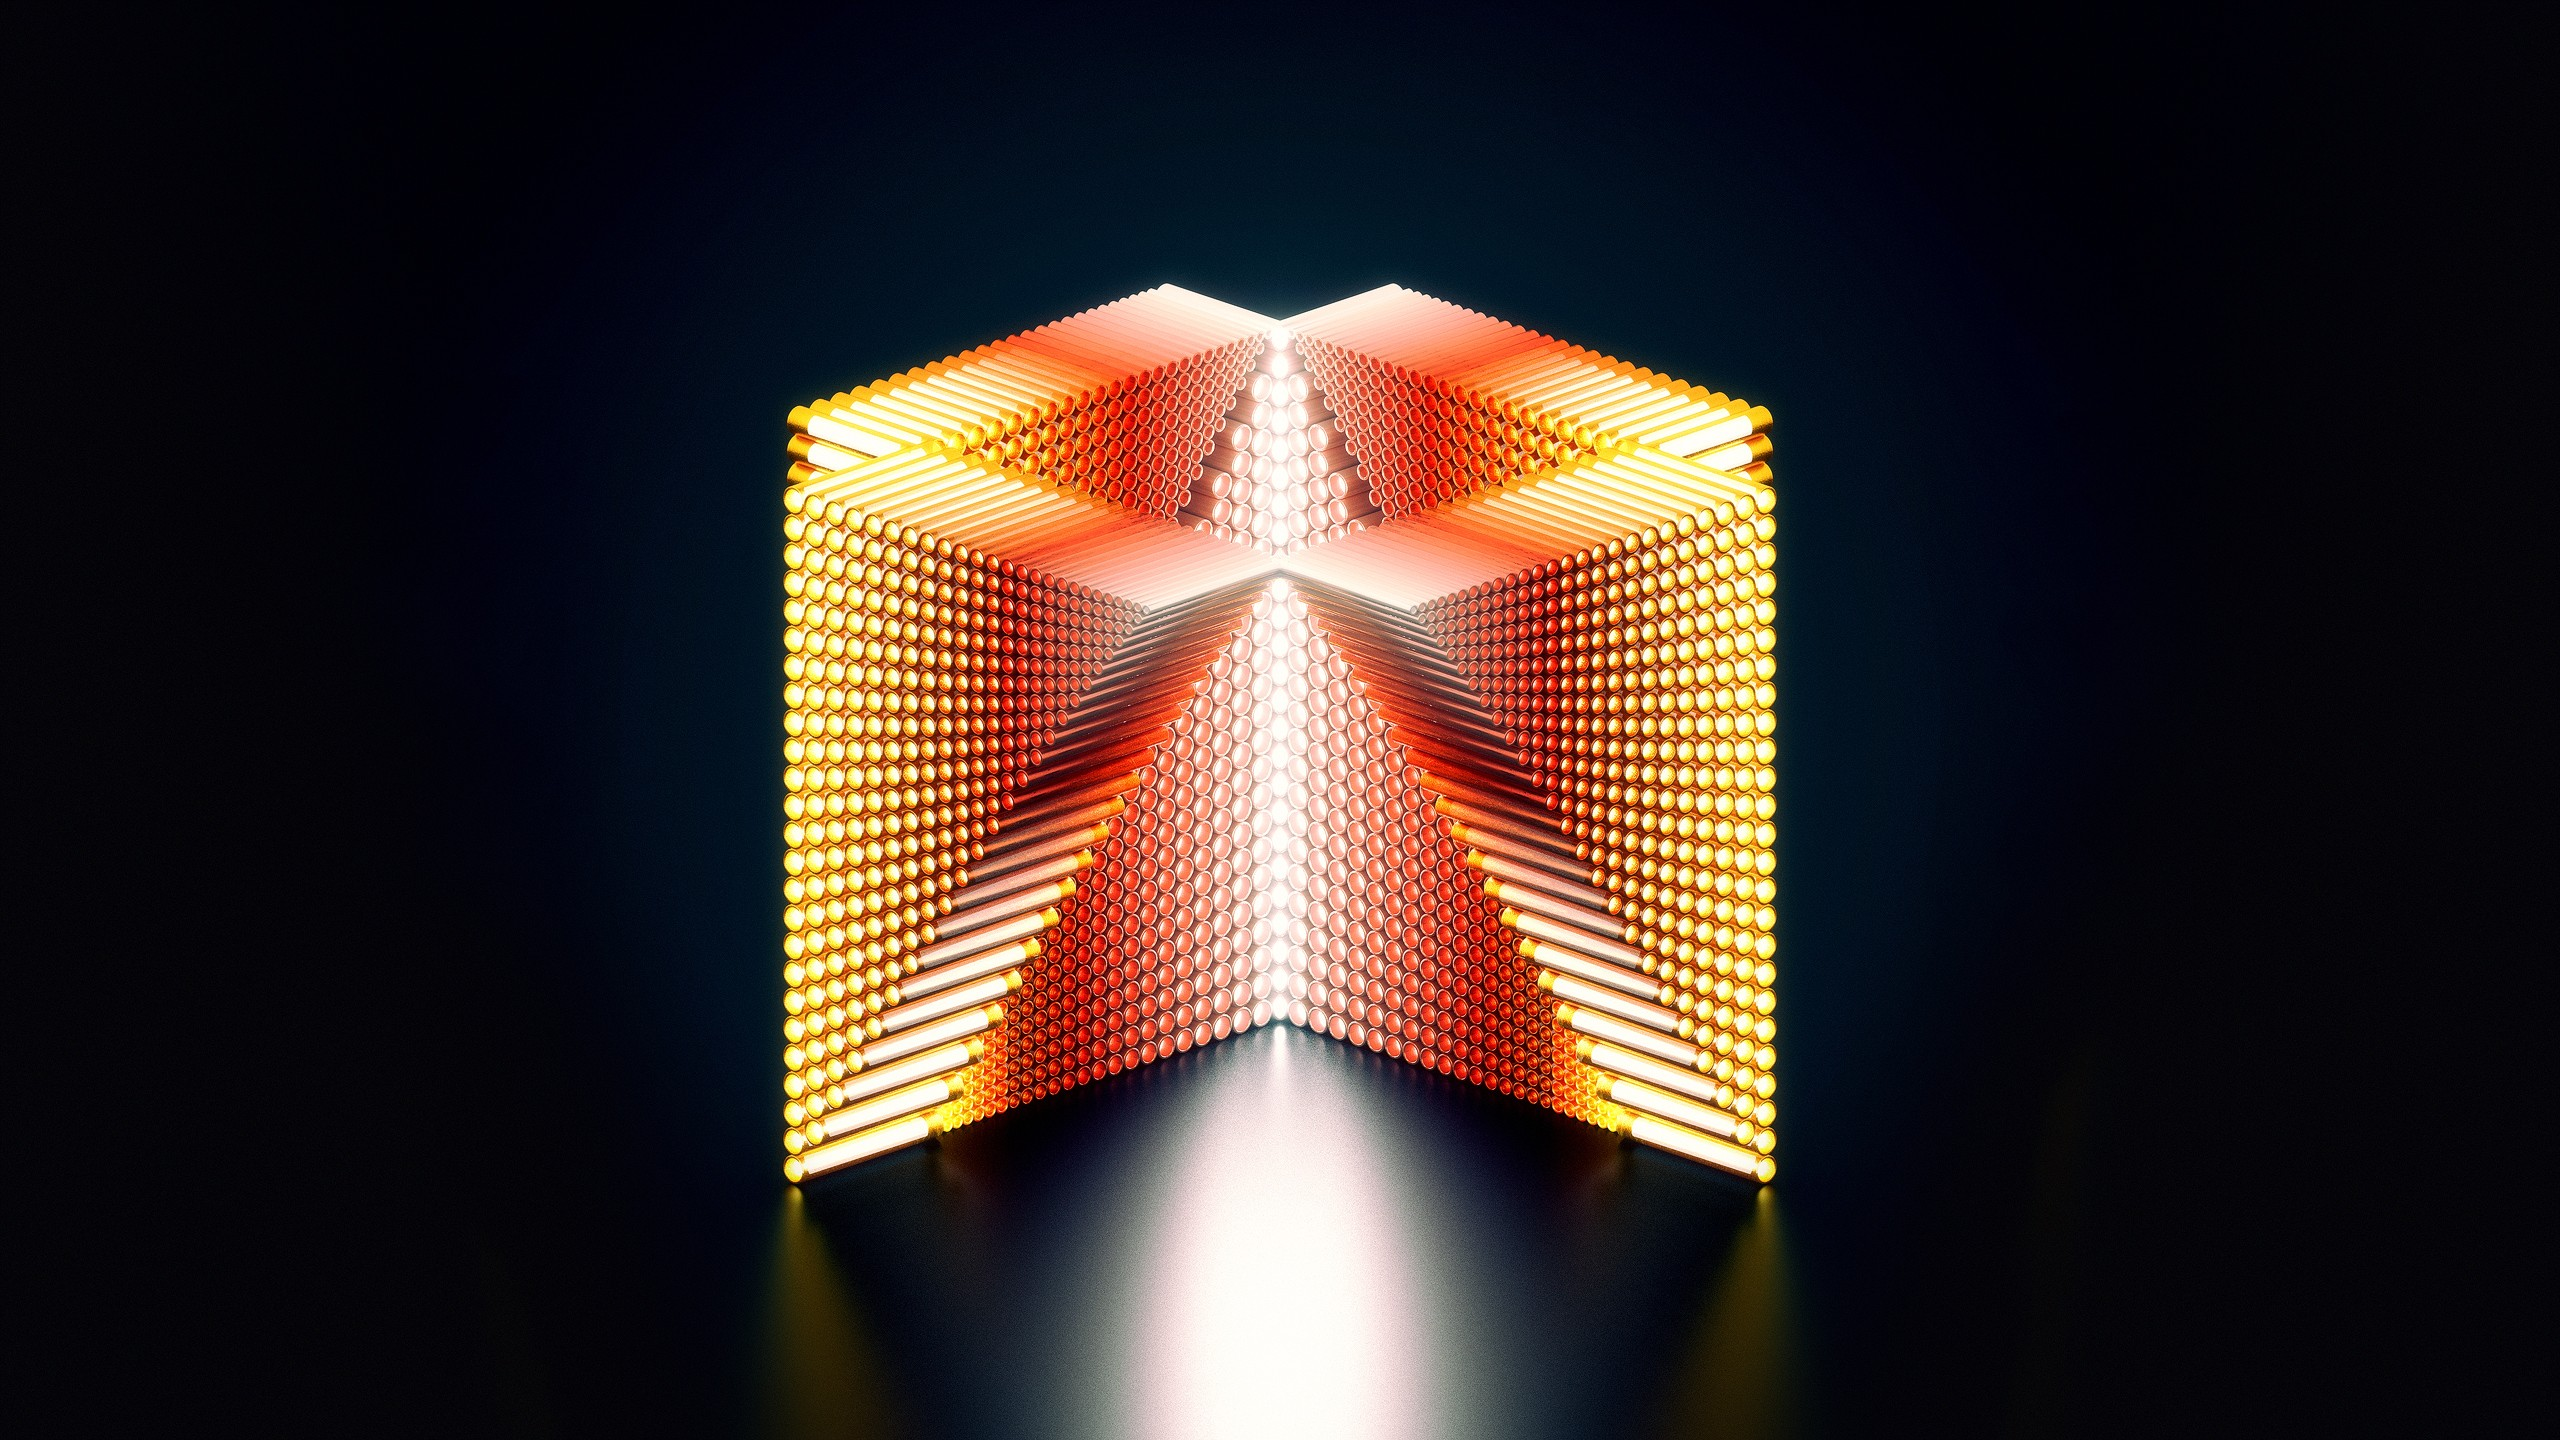 Colorful Wallpaper Iphone X Wallpaper Hd 3d Medaltations Cube Abstract 13584